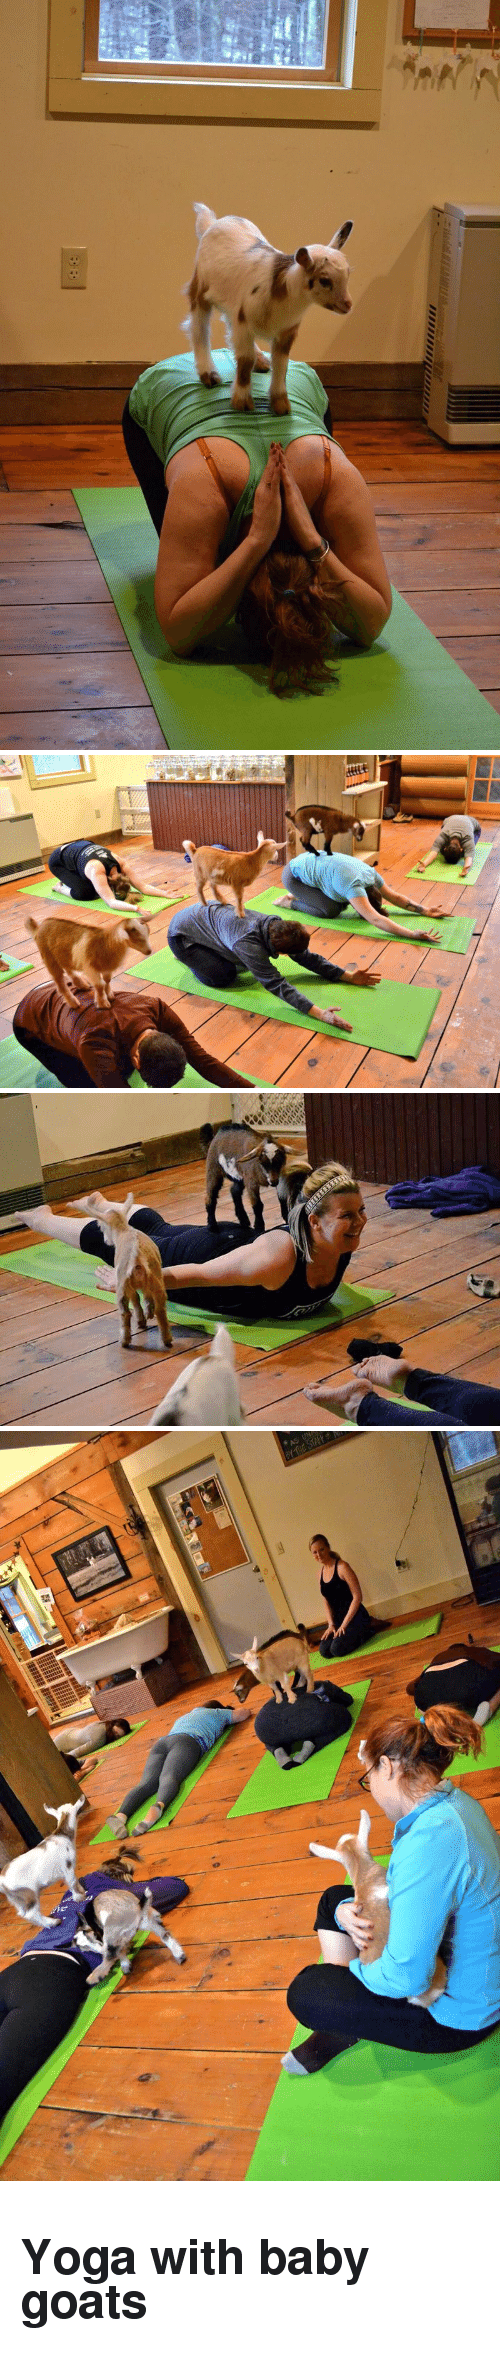 Baby Goats: <h2>Yoga with baby goats</h2>